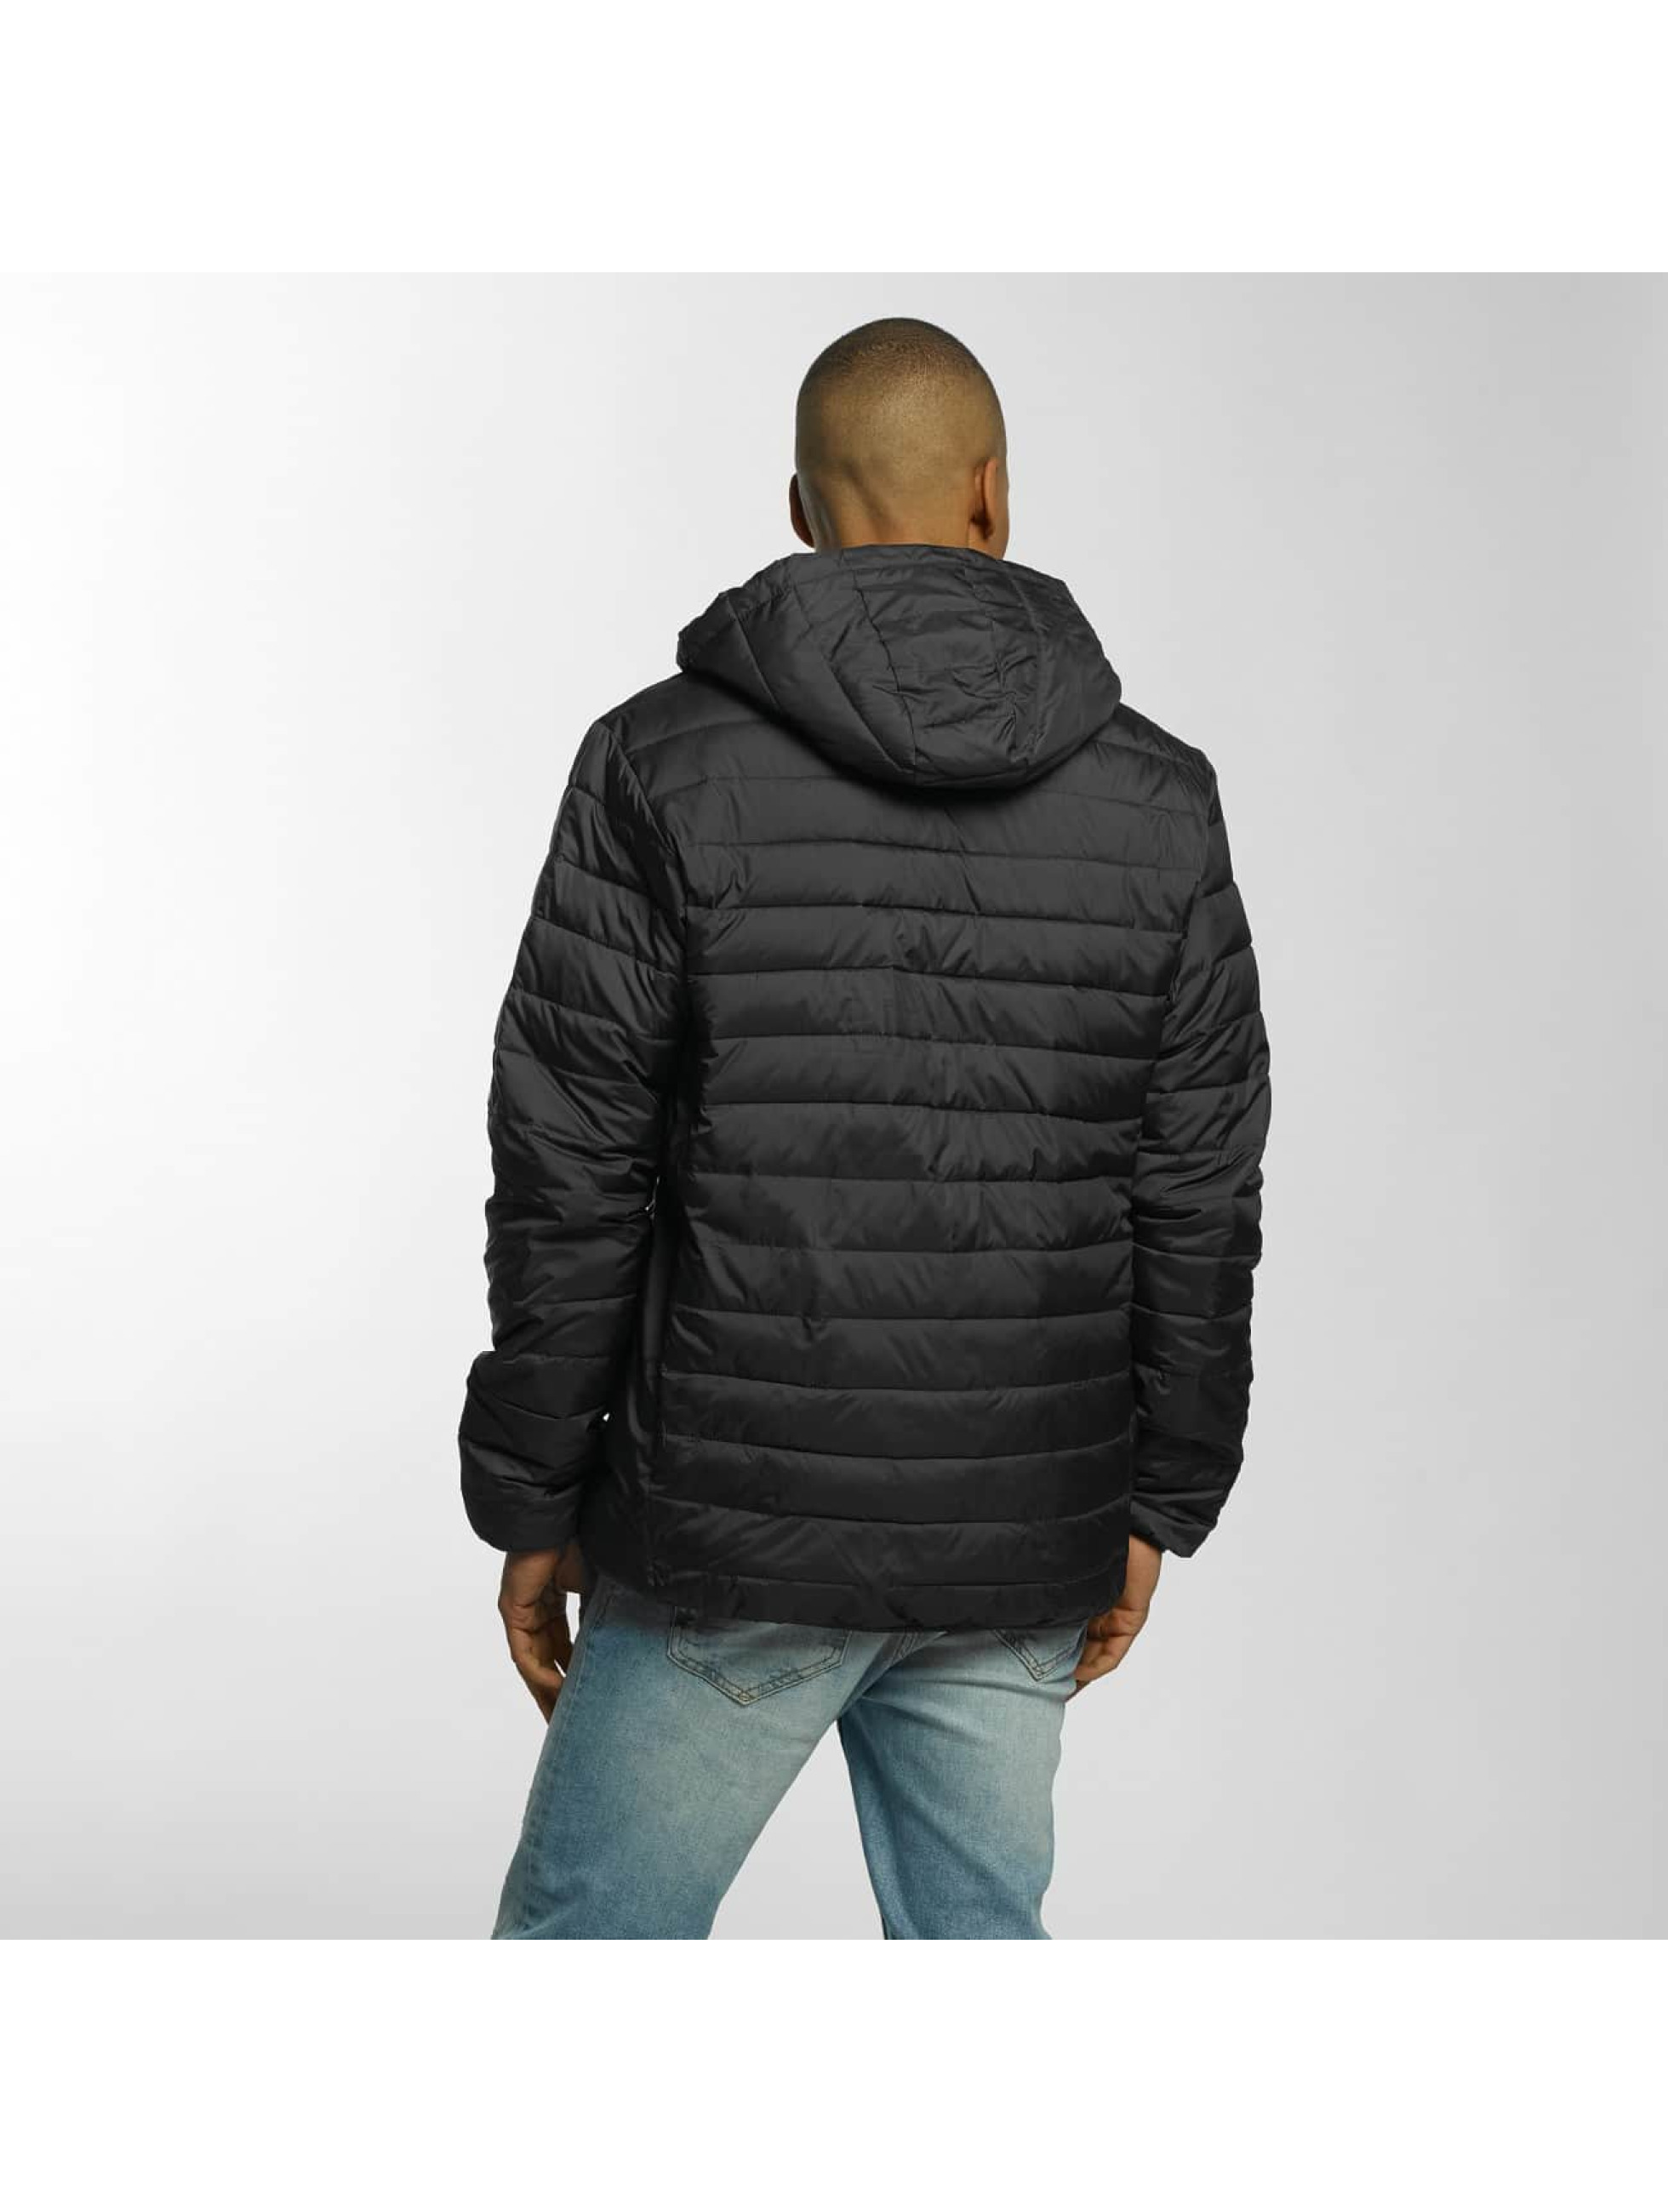 Quiksilver Giacca invernale Everyday Scaly nero